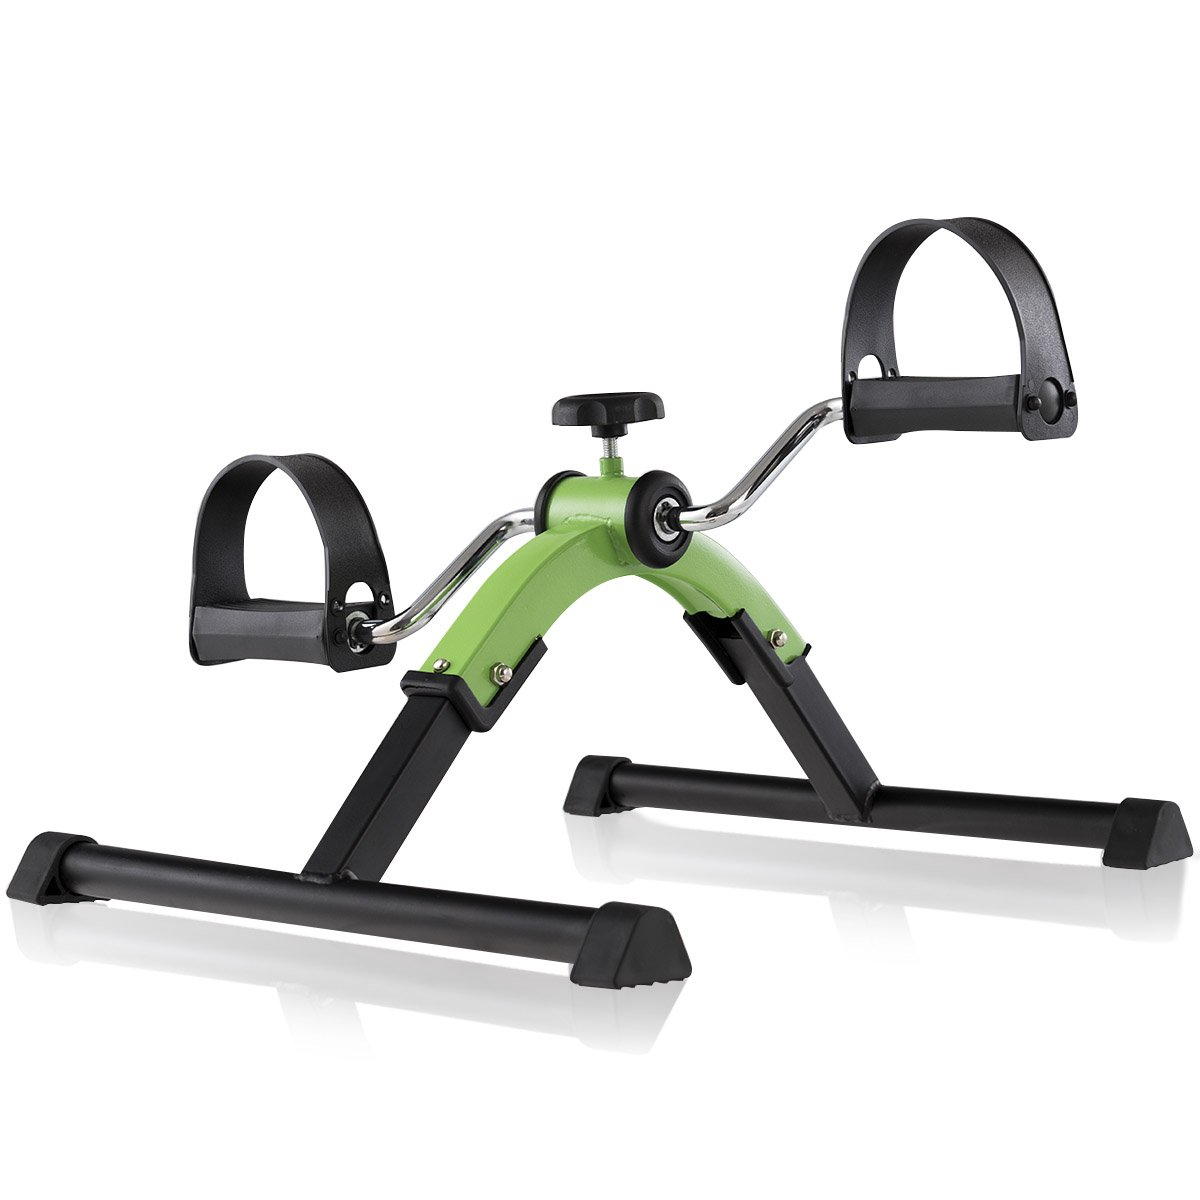 Goplus Portable Folding Pedal Exerciser Adjustable Resistance Indoor Mini Exercise Bike for Arms and Legs Green